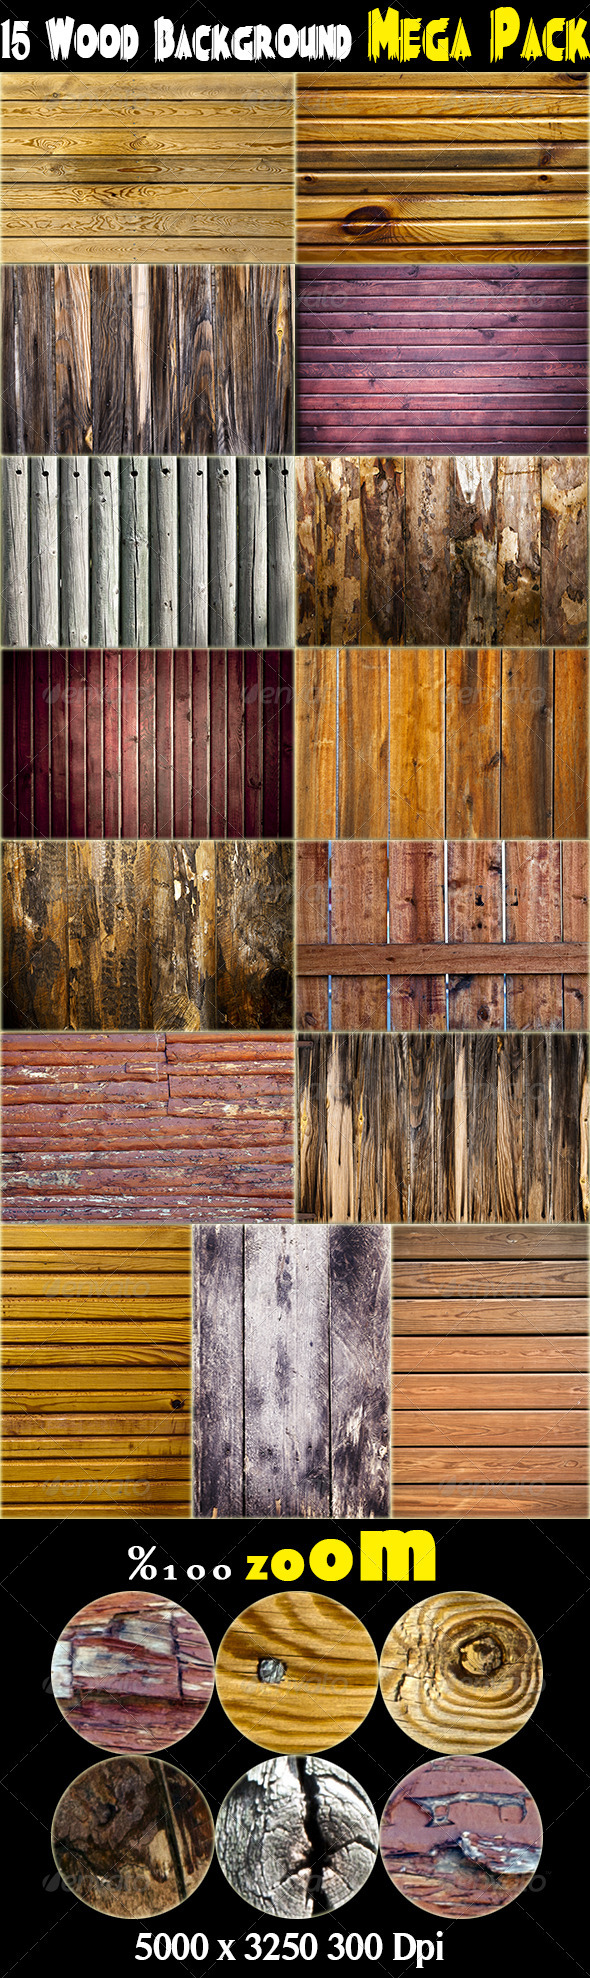 15 Wood Background Mega Pack - Wood Textures